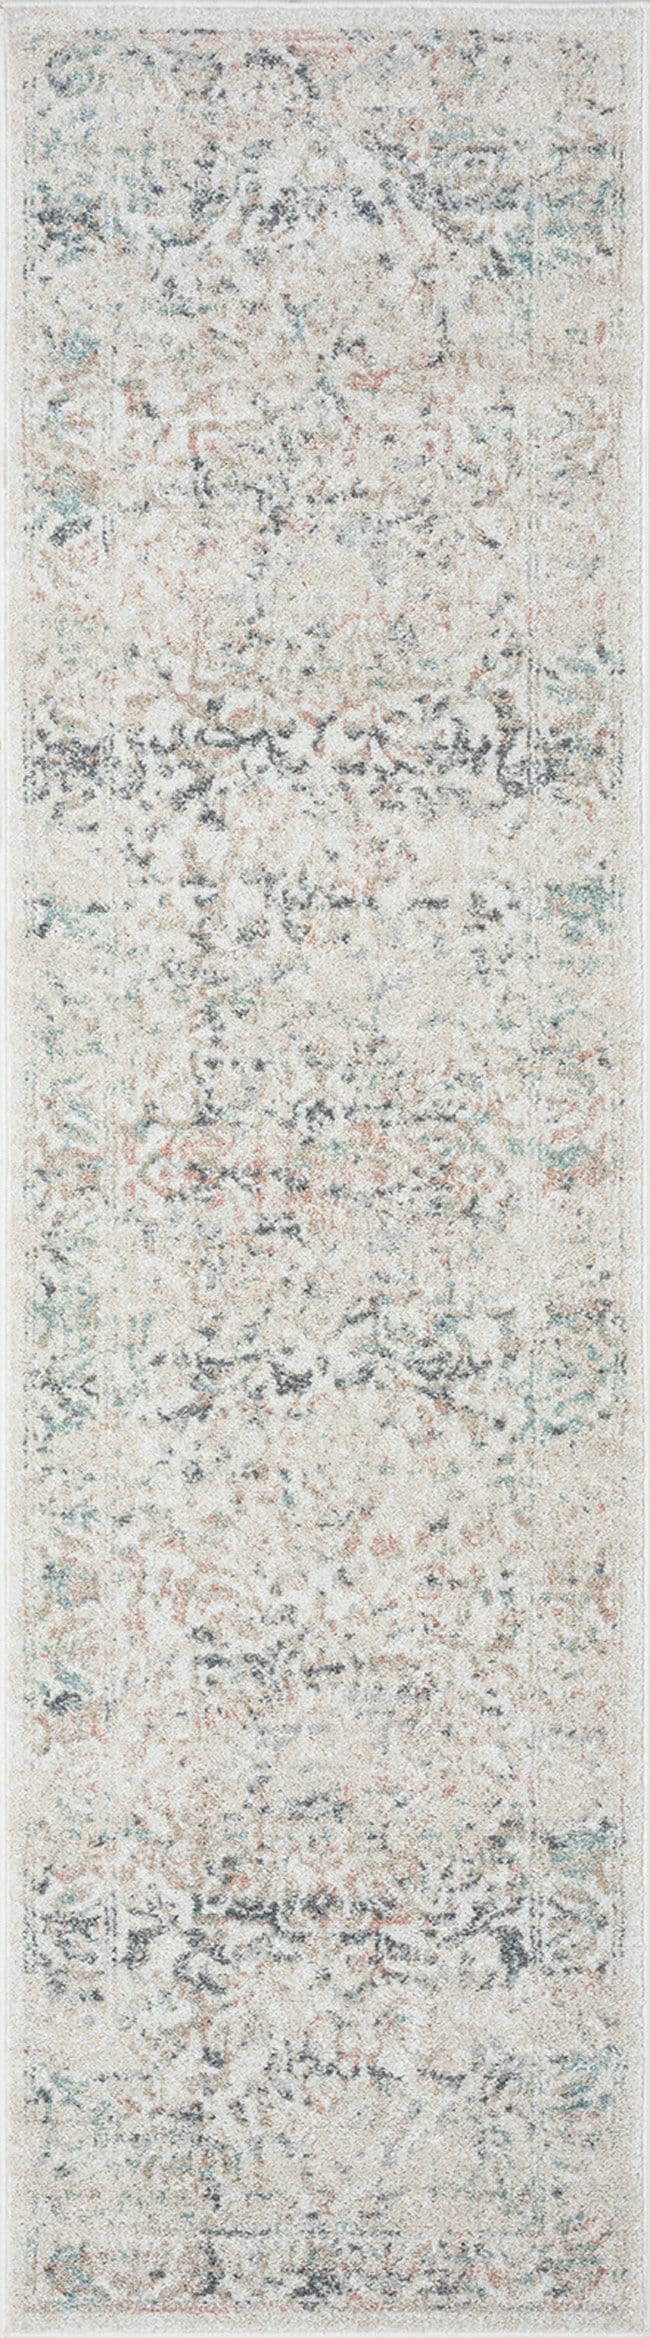 Elouise Cream and Grey Multi-Colour Traditional Floral Runner Rug